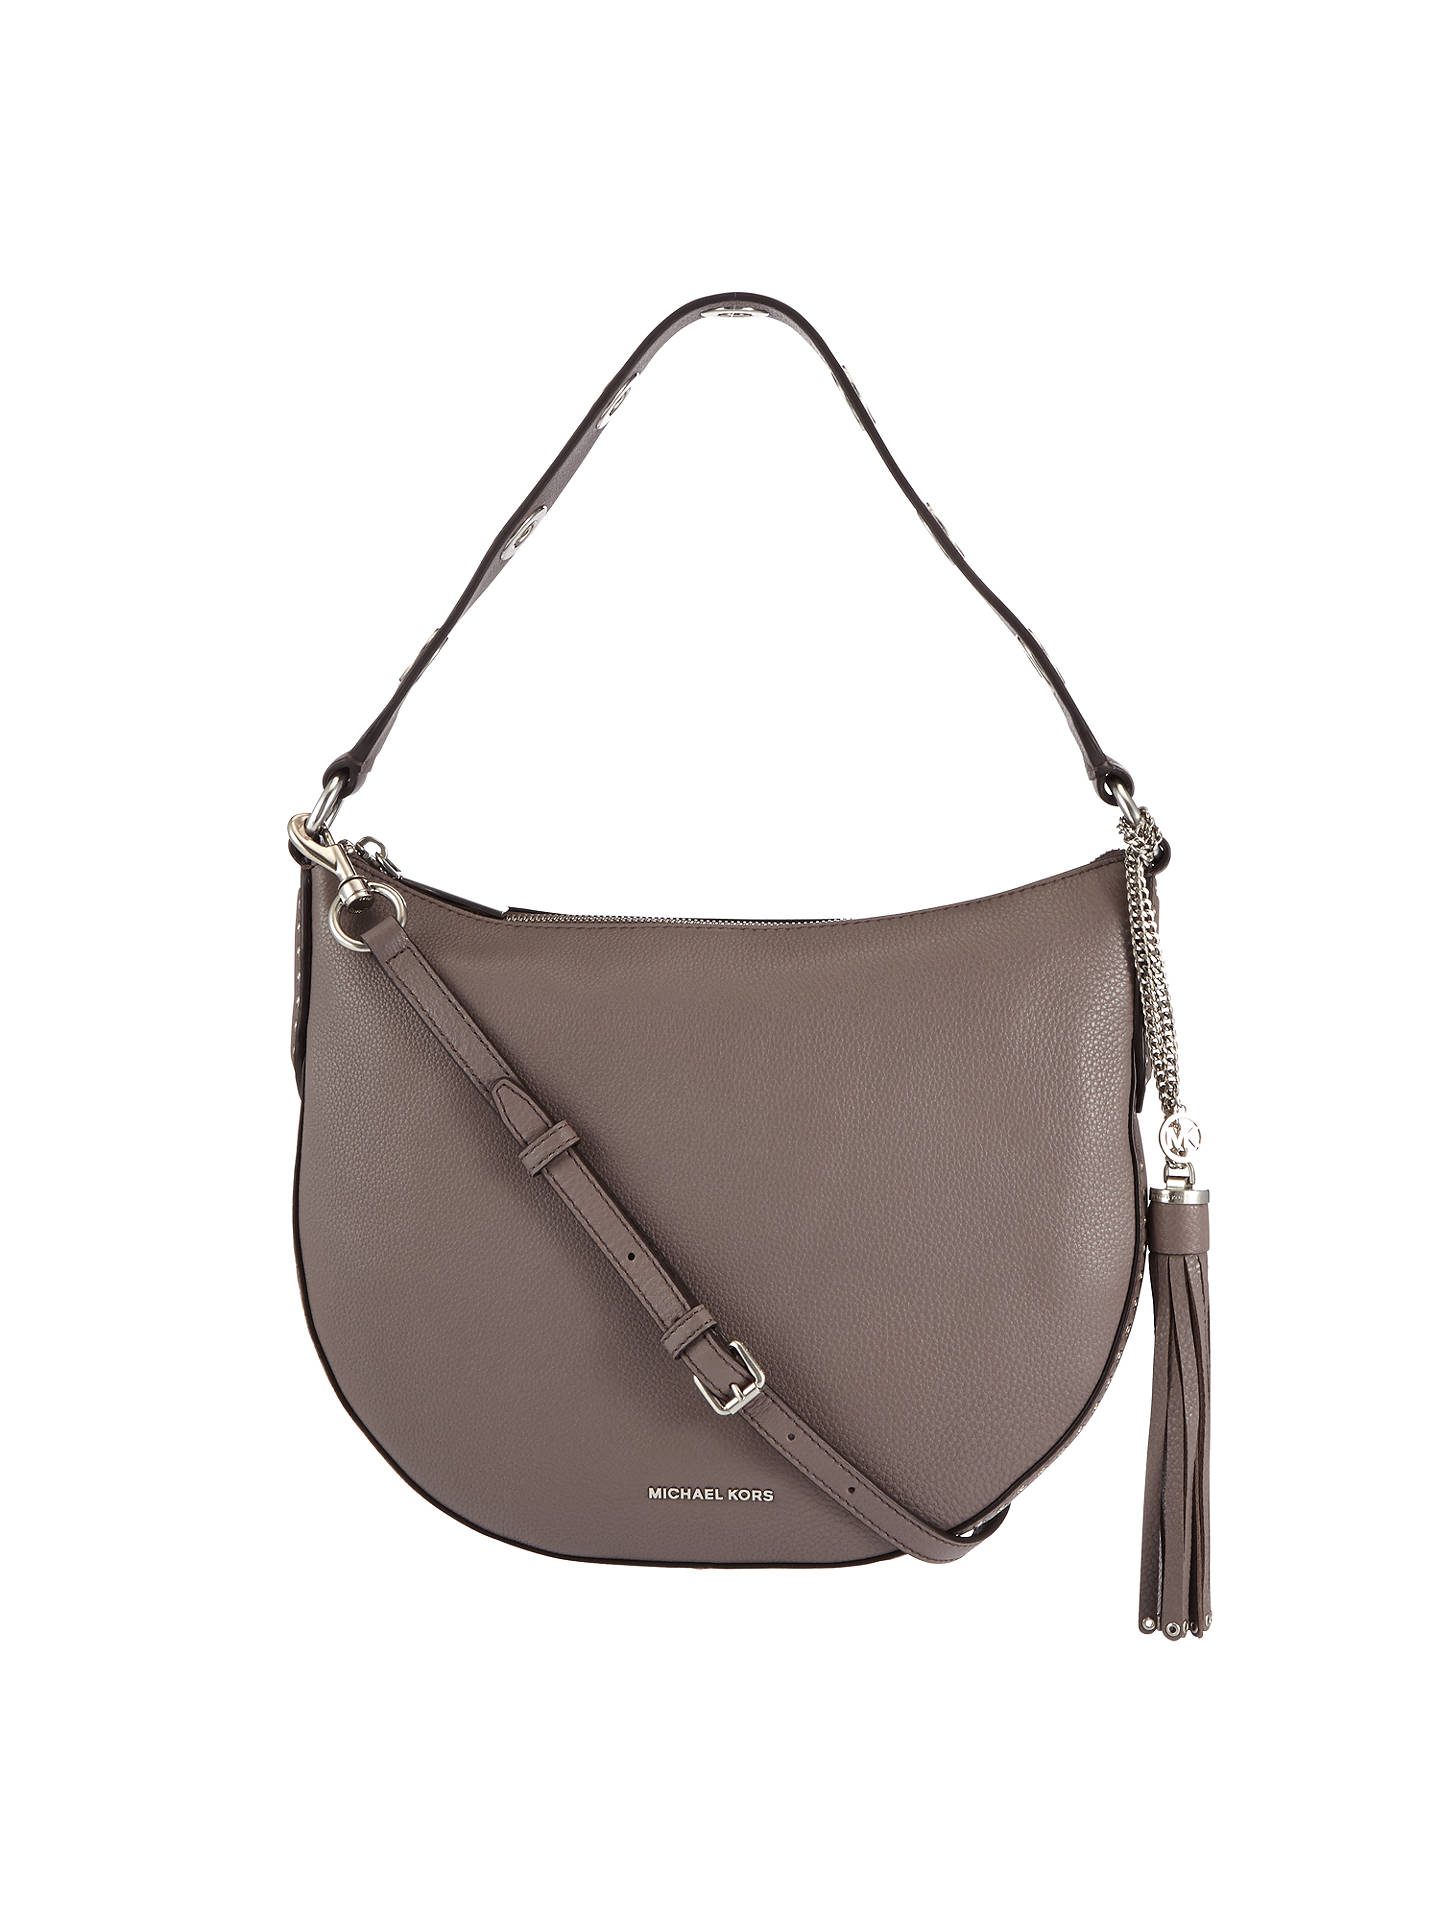 98f622bf69f3 Buy MICHAEL Michael Kors Brooklyn Large Convertible Leather Hobo Bag, Cinder  Online at johnlewis.